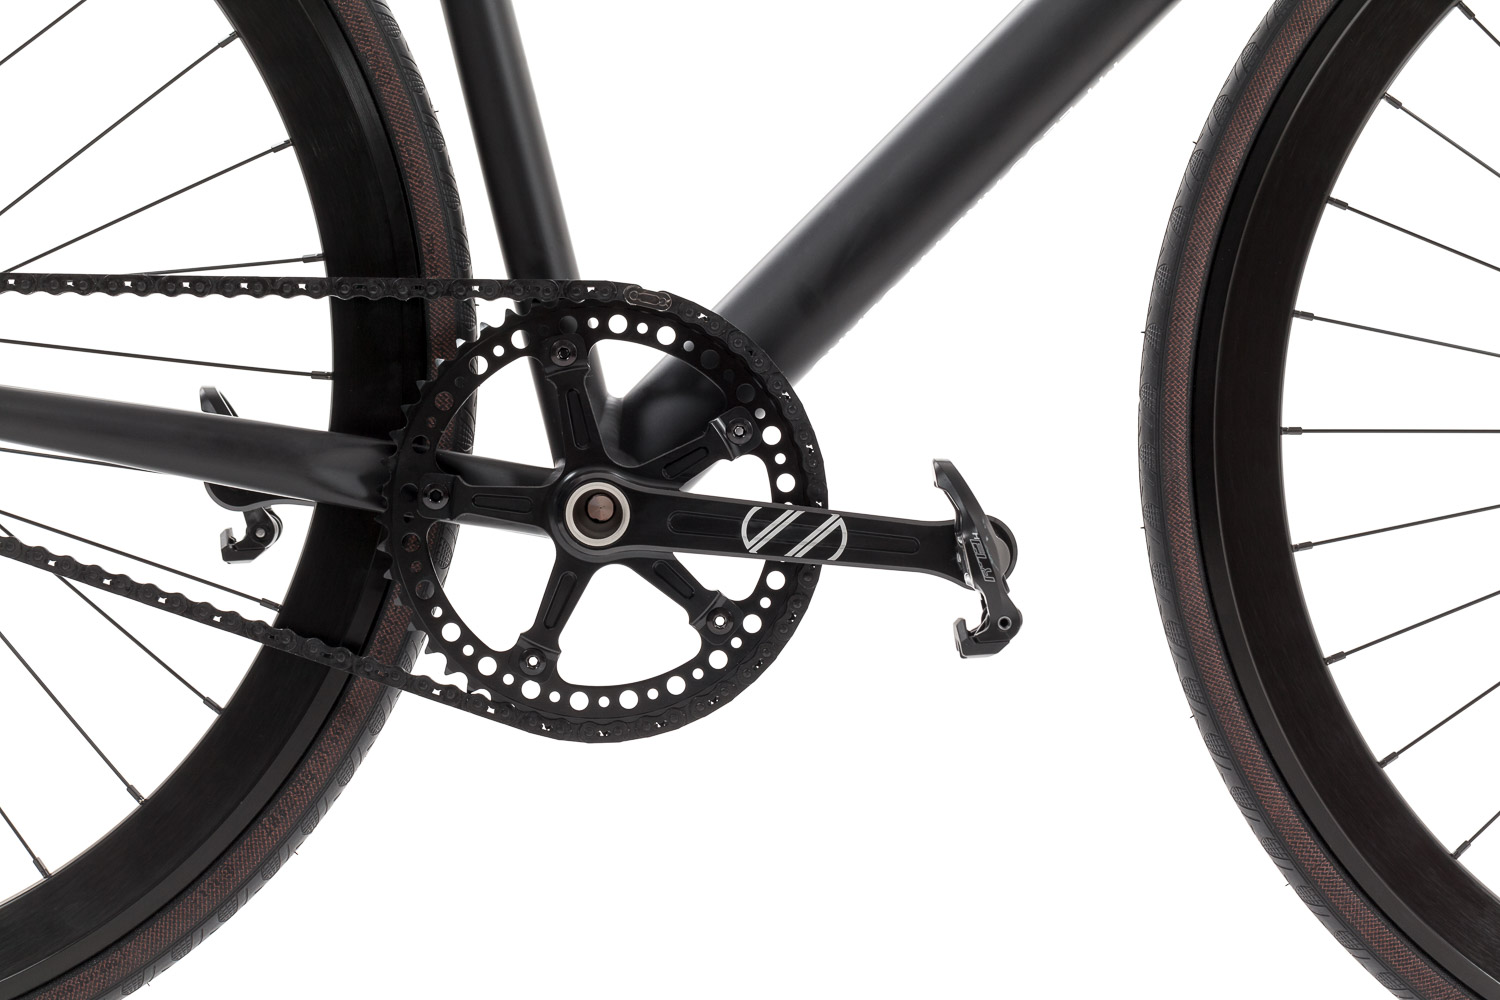 8bar-fhain-pro-black-drop-fixie-fixed-gear-6